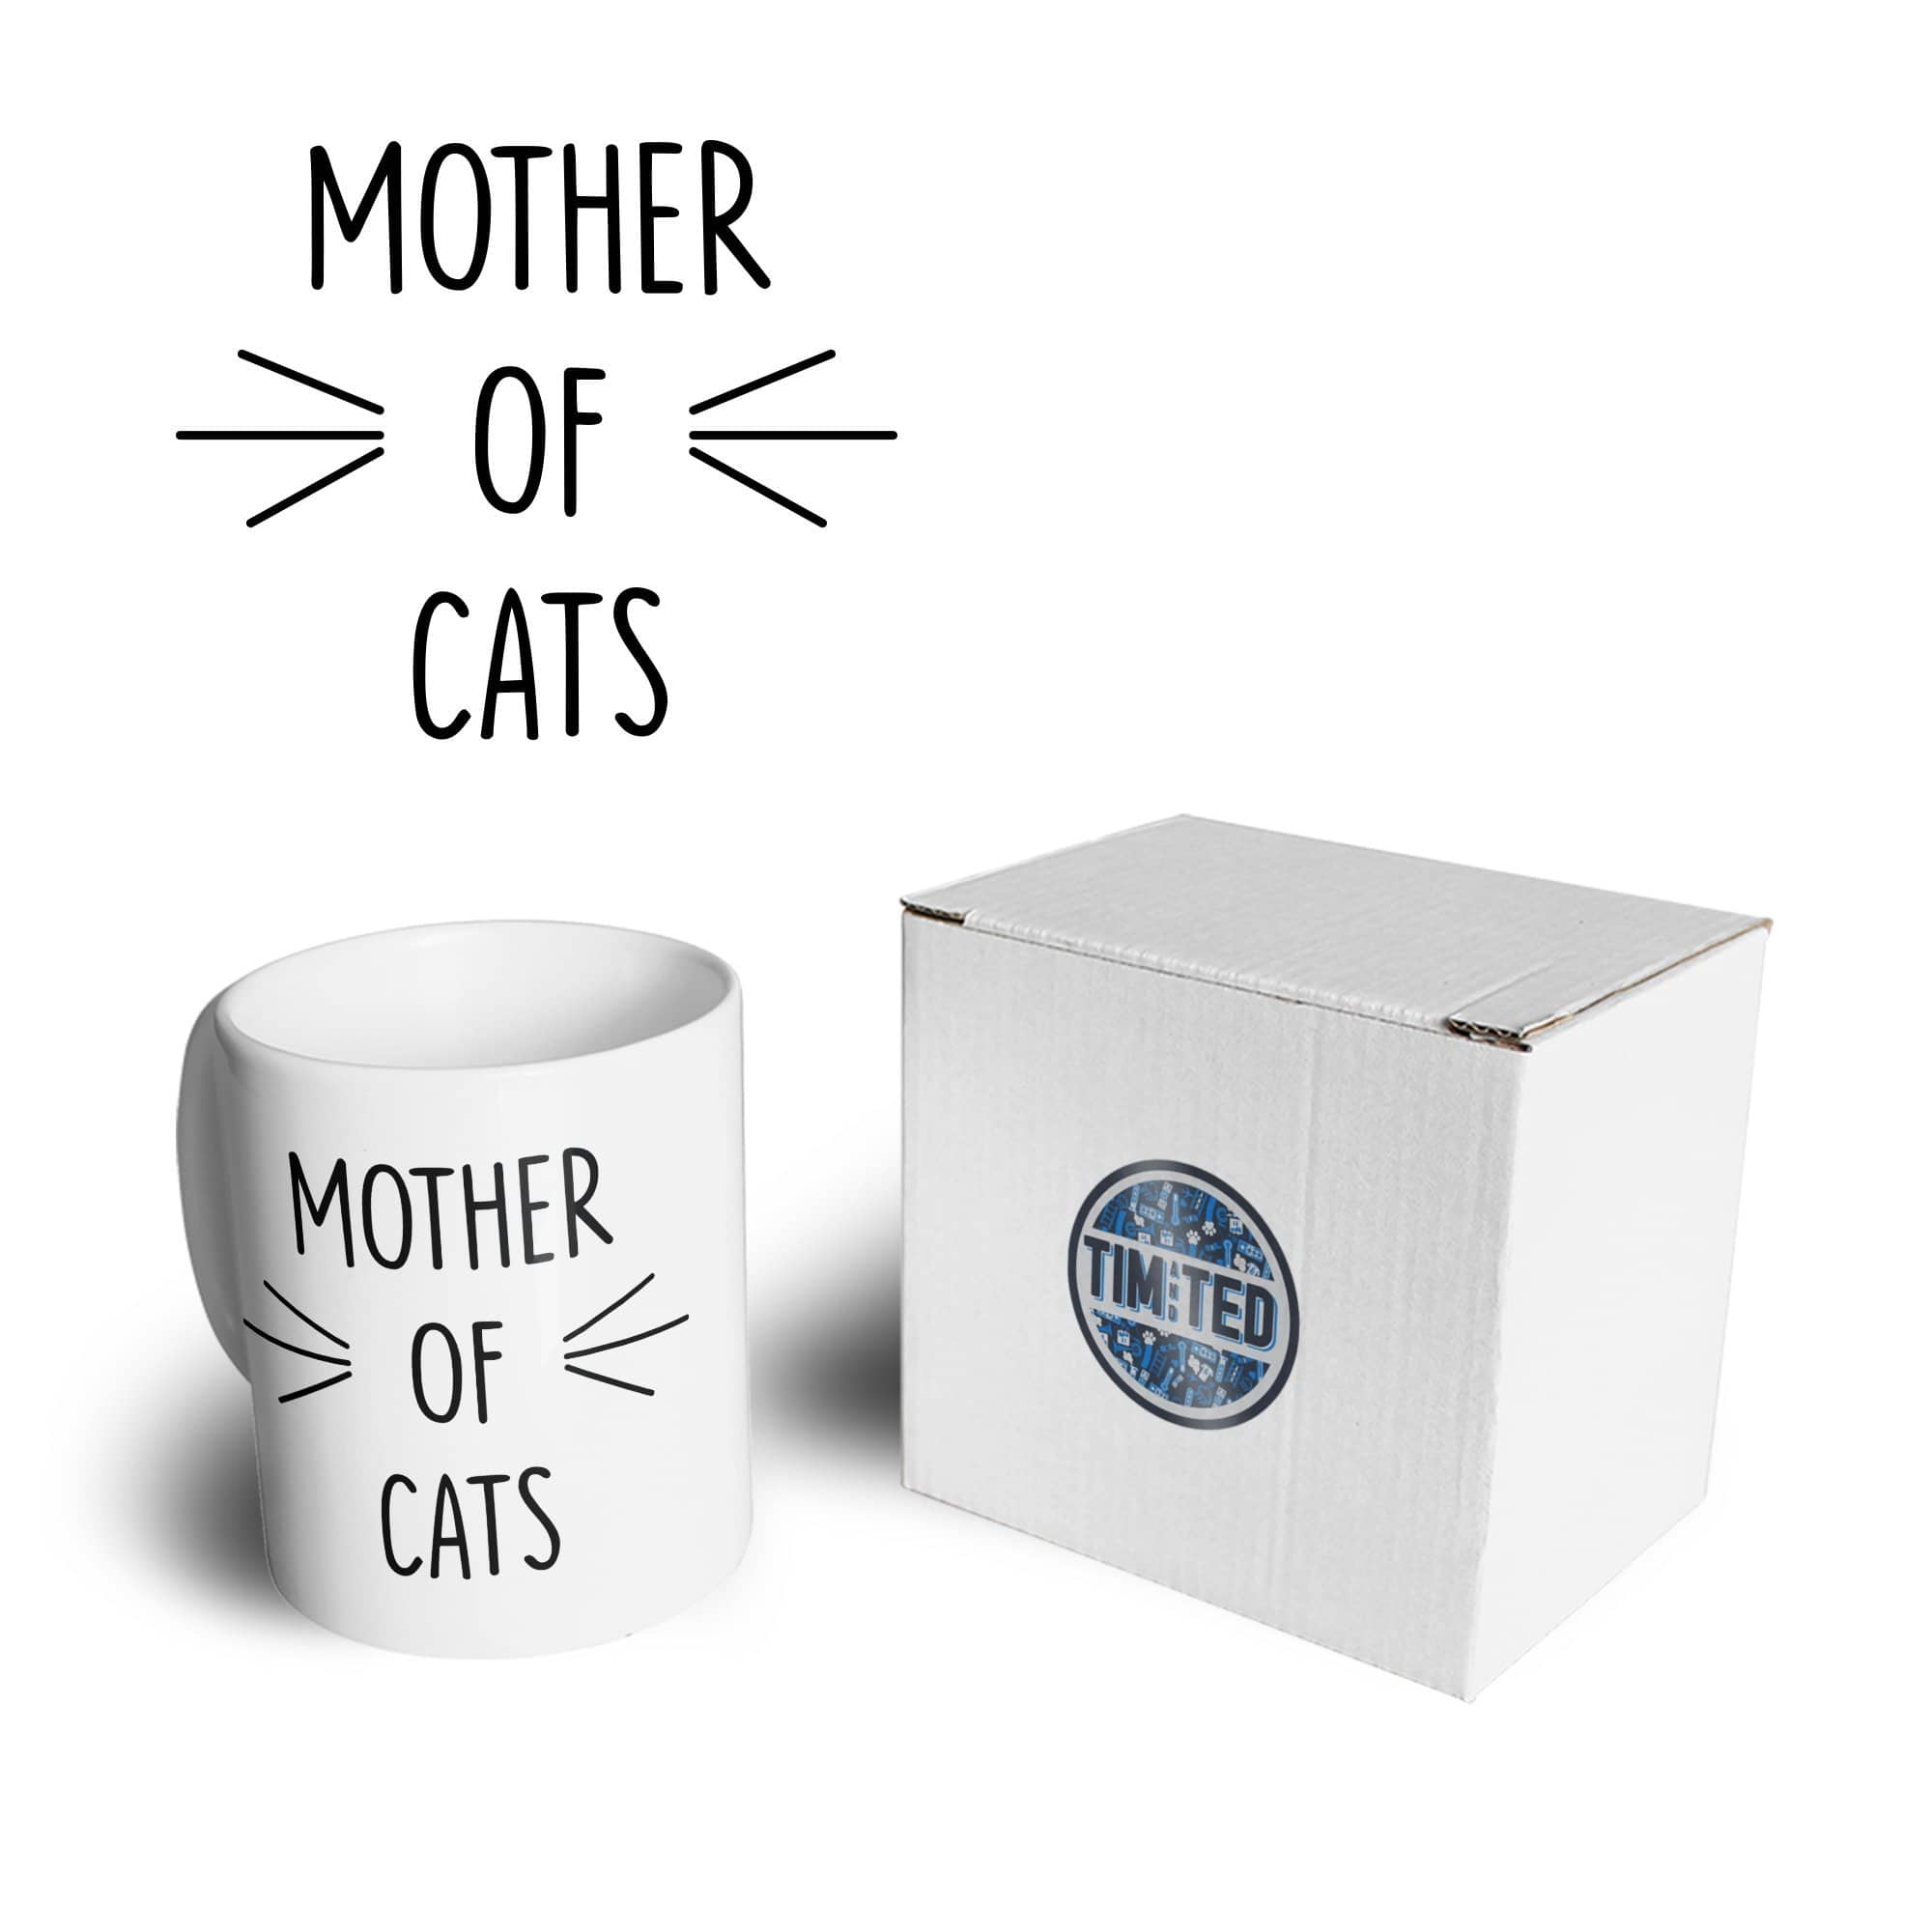 Novelty Pet Mug Mother Of Cats Slogan Coffee Tea Cup